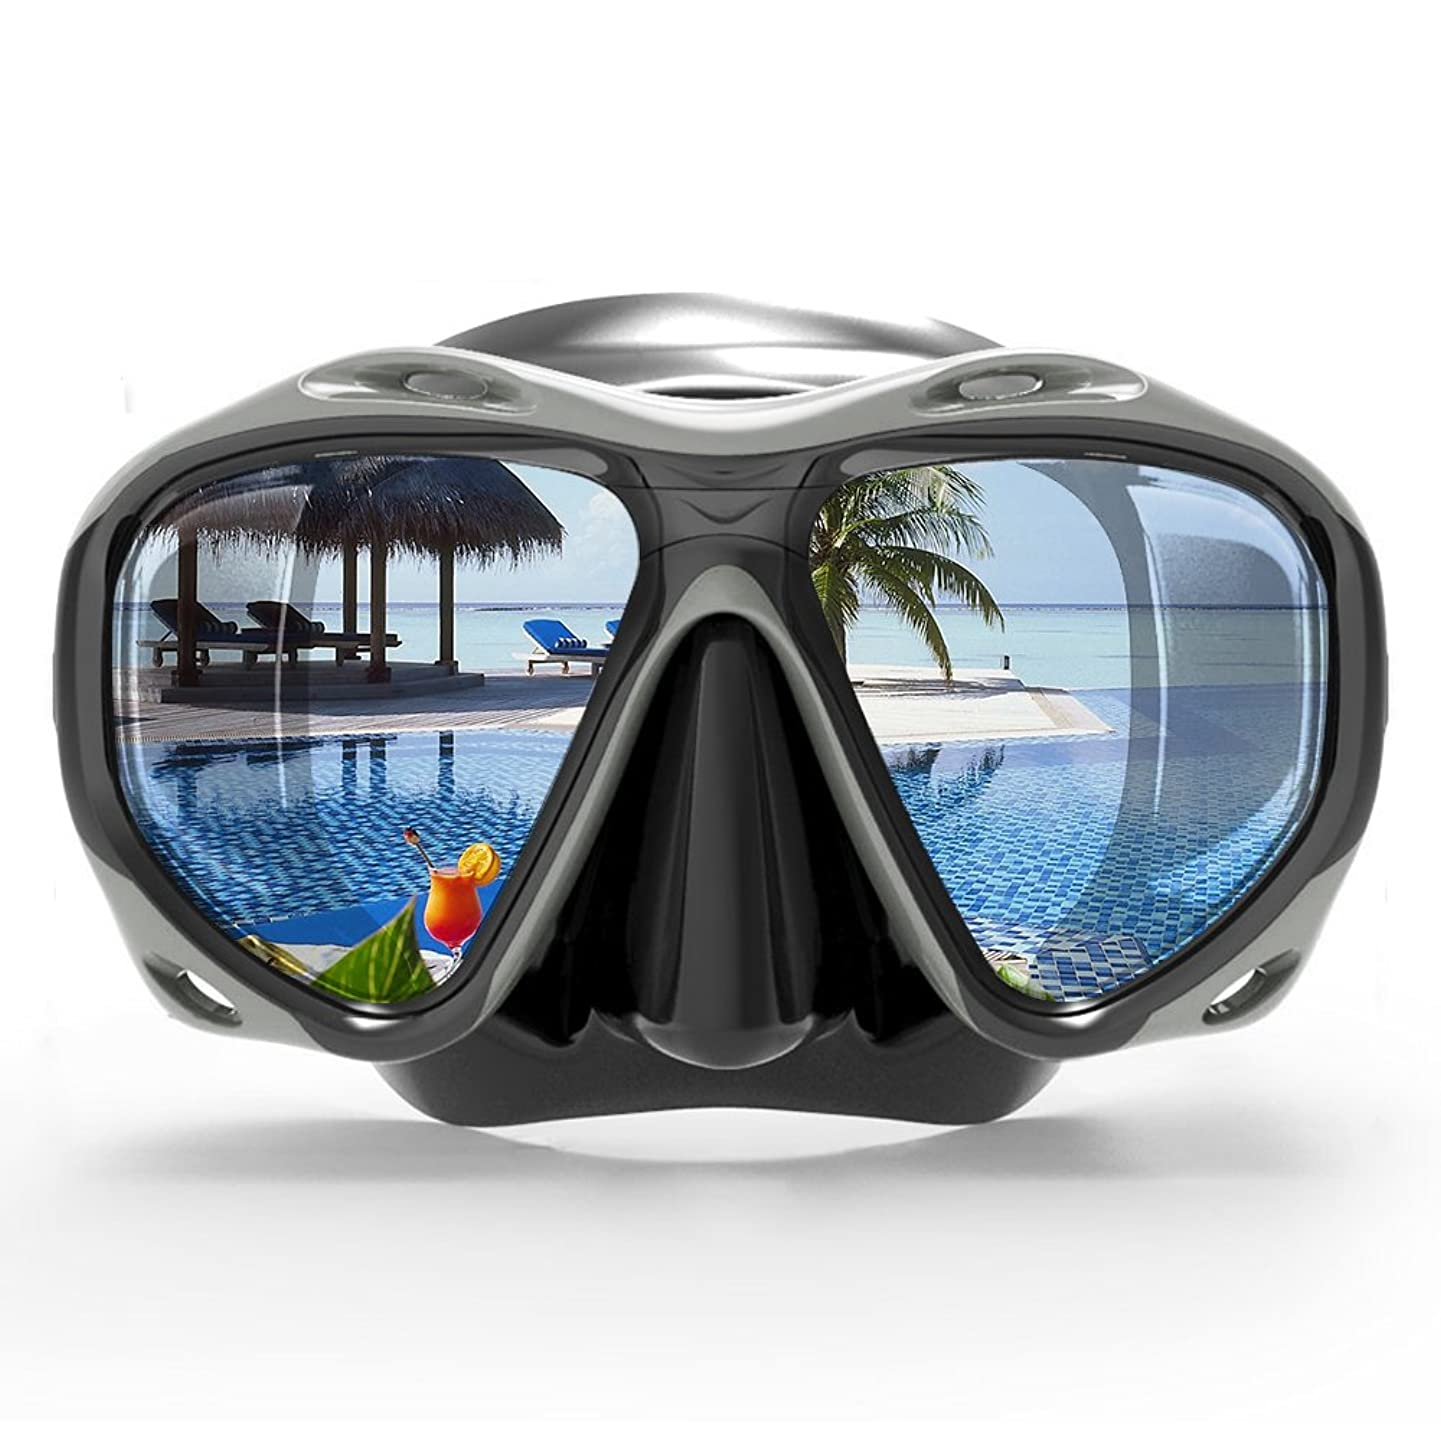 COPOZZ Scuba Mask, Snorkeling Dive Glasses, Free Diving Tempered Glass Goggles - Optional Dry Snorkel with Comfortable Mouthpiece